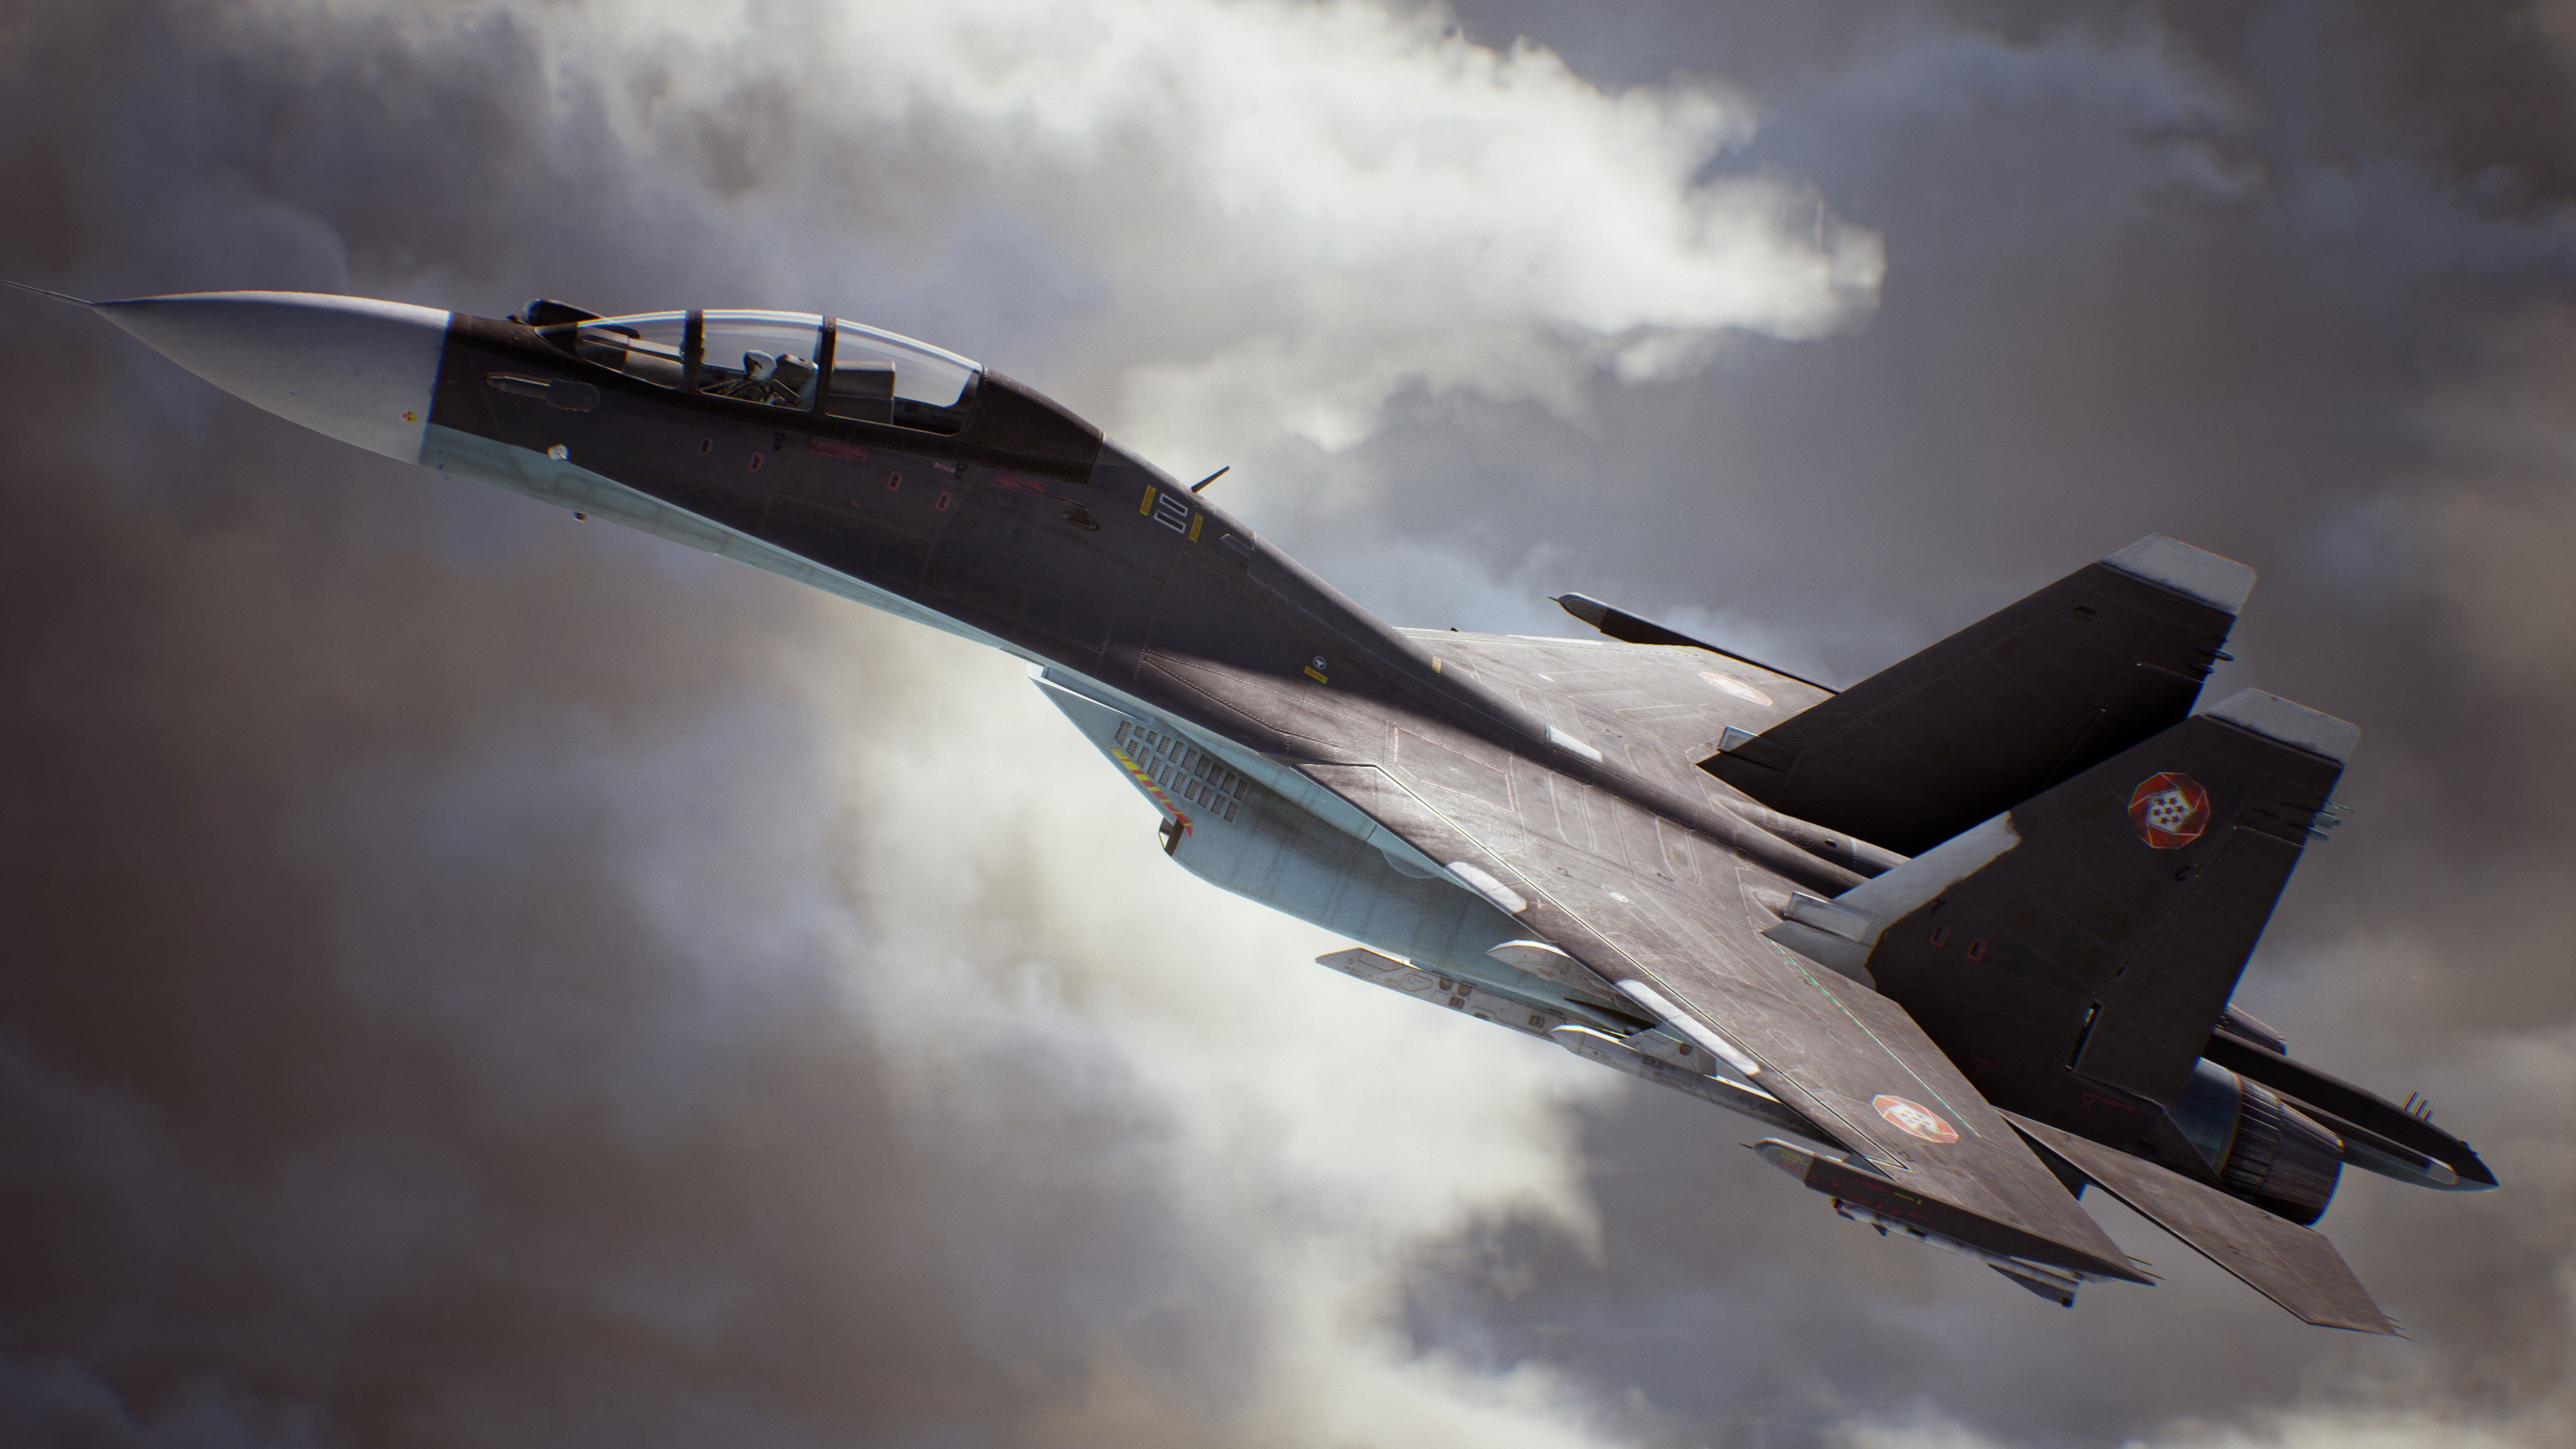 Res: 3840x2160, Ace Combat 7: Skies Unknown 4K Wallpaper ...